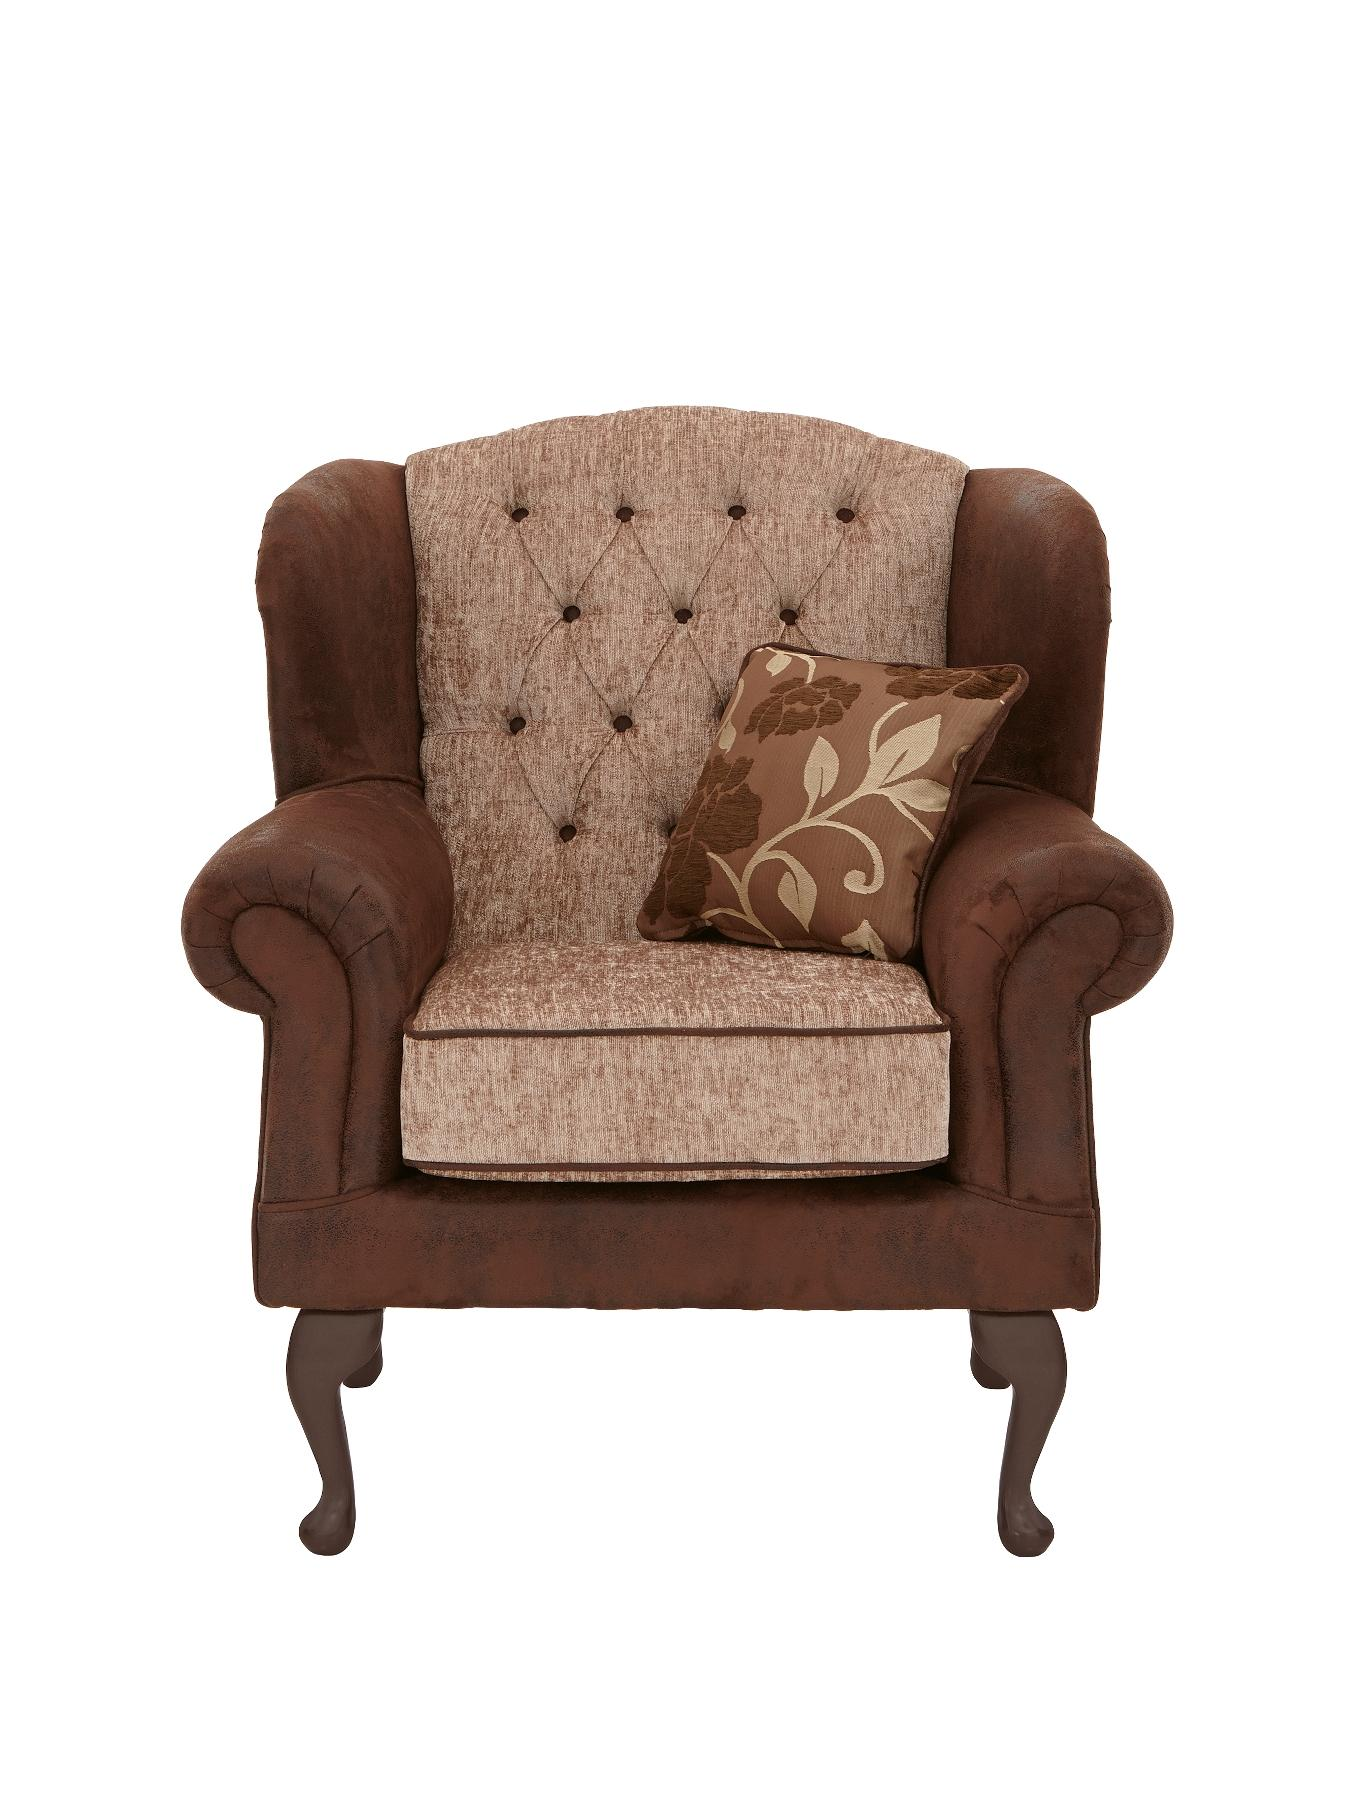 Astley Wing Chair, Chocolate,Black